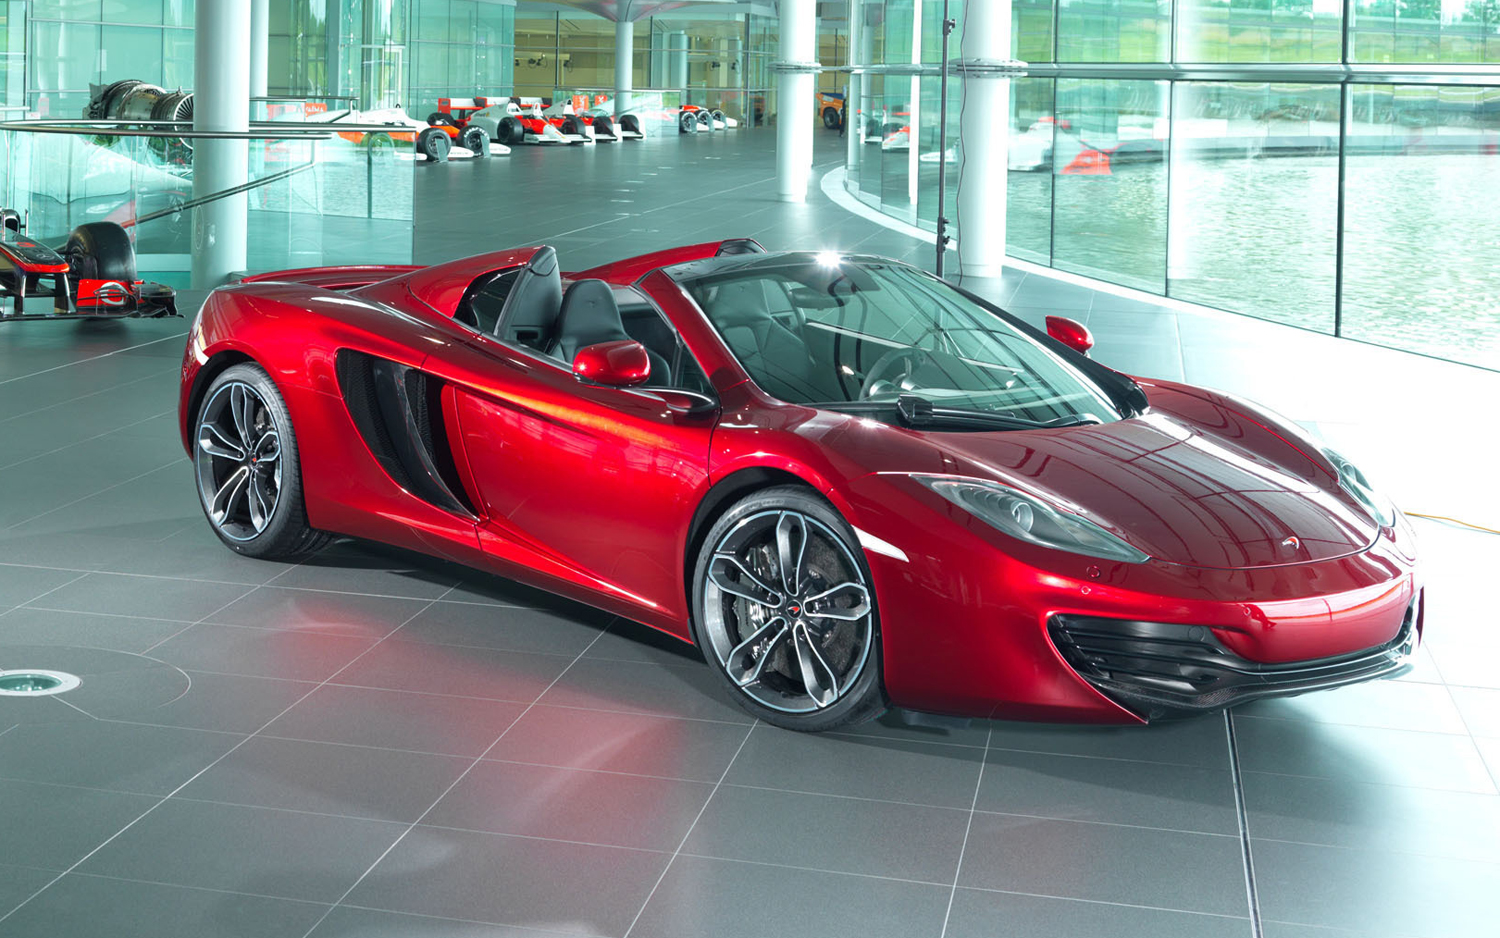 https://enthusiastnetwork.s3.amazonaws.com/uploads/sites/5/2012/10/Neiman-Marcus-Edition-2013-McLaren-12C-Spider-close.jpg?impolicy=entryimage